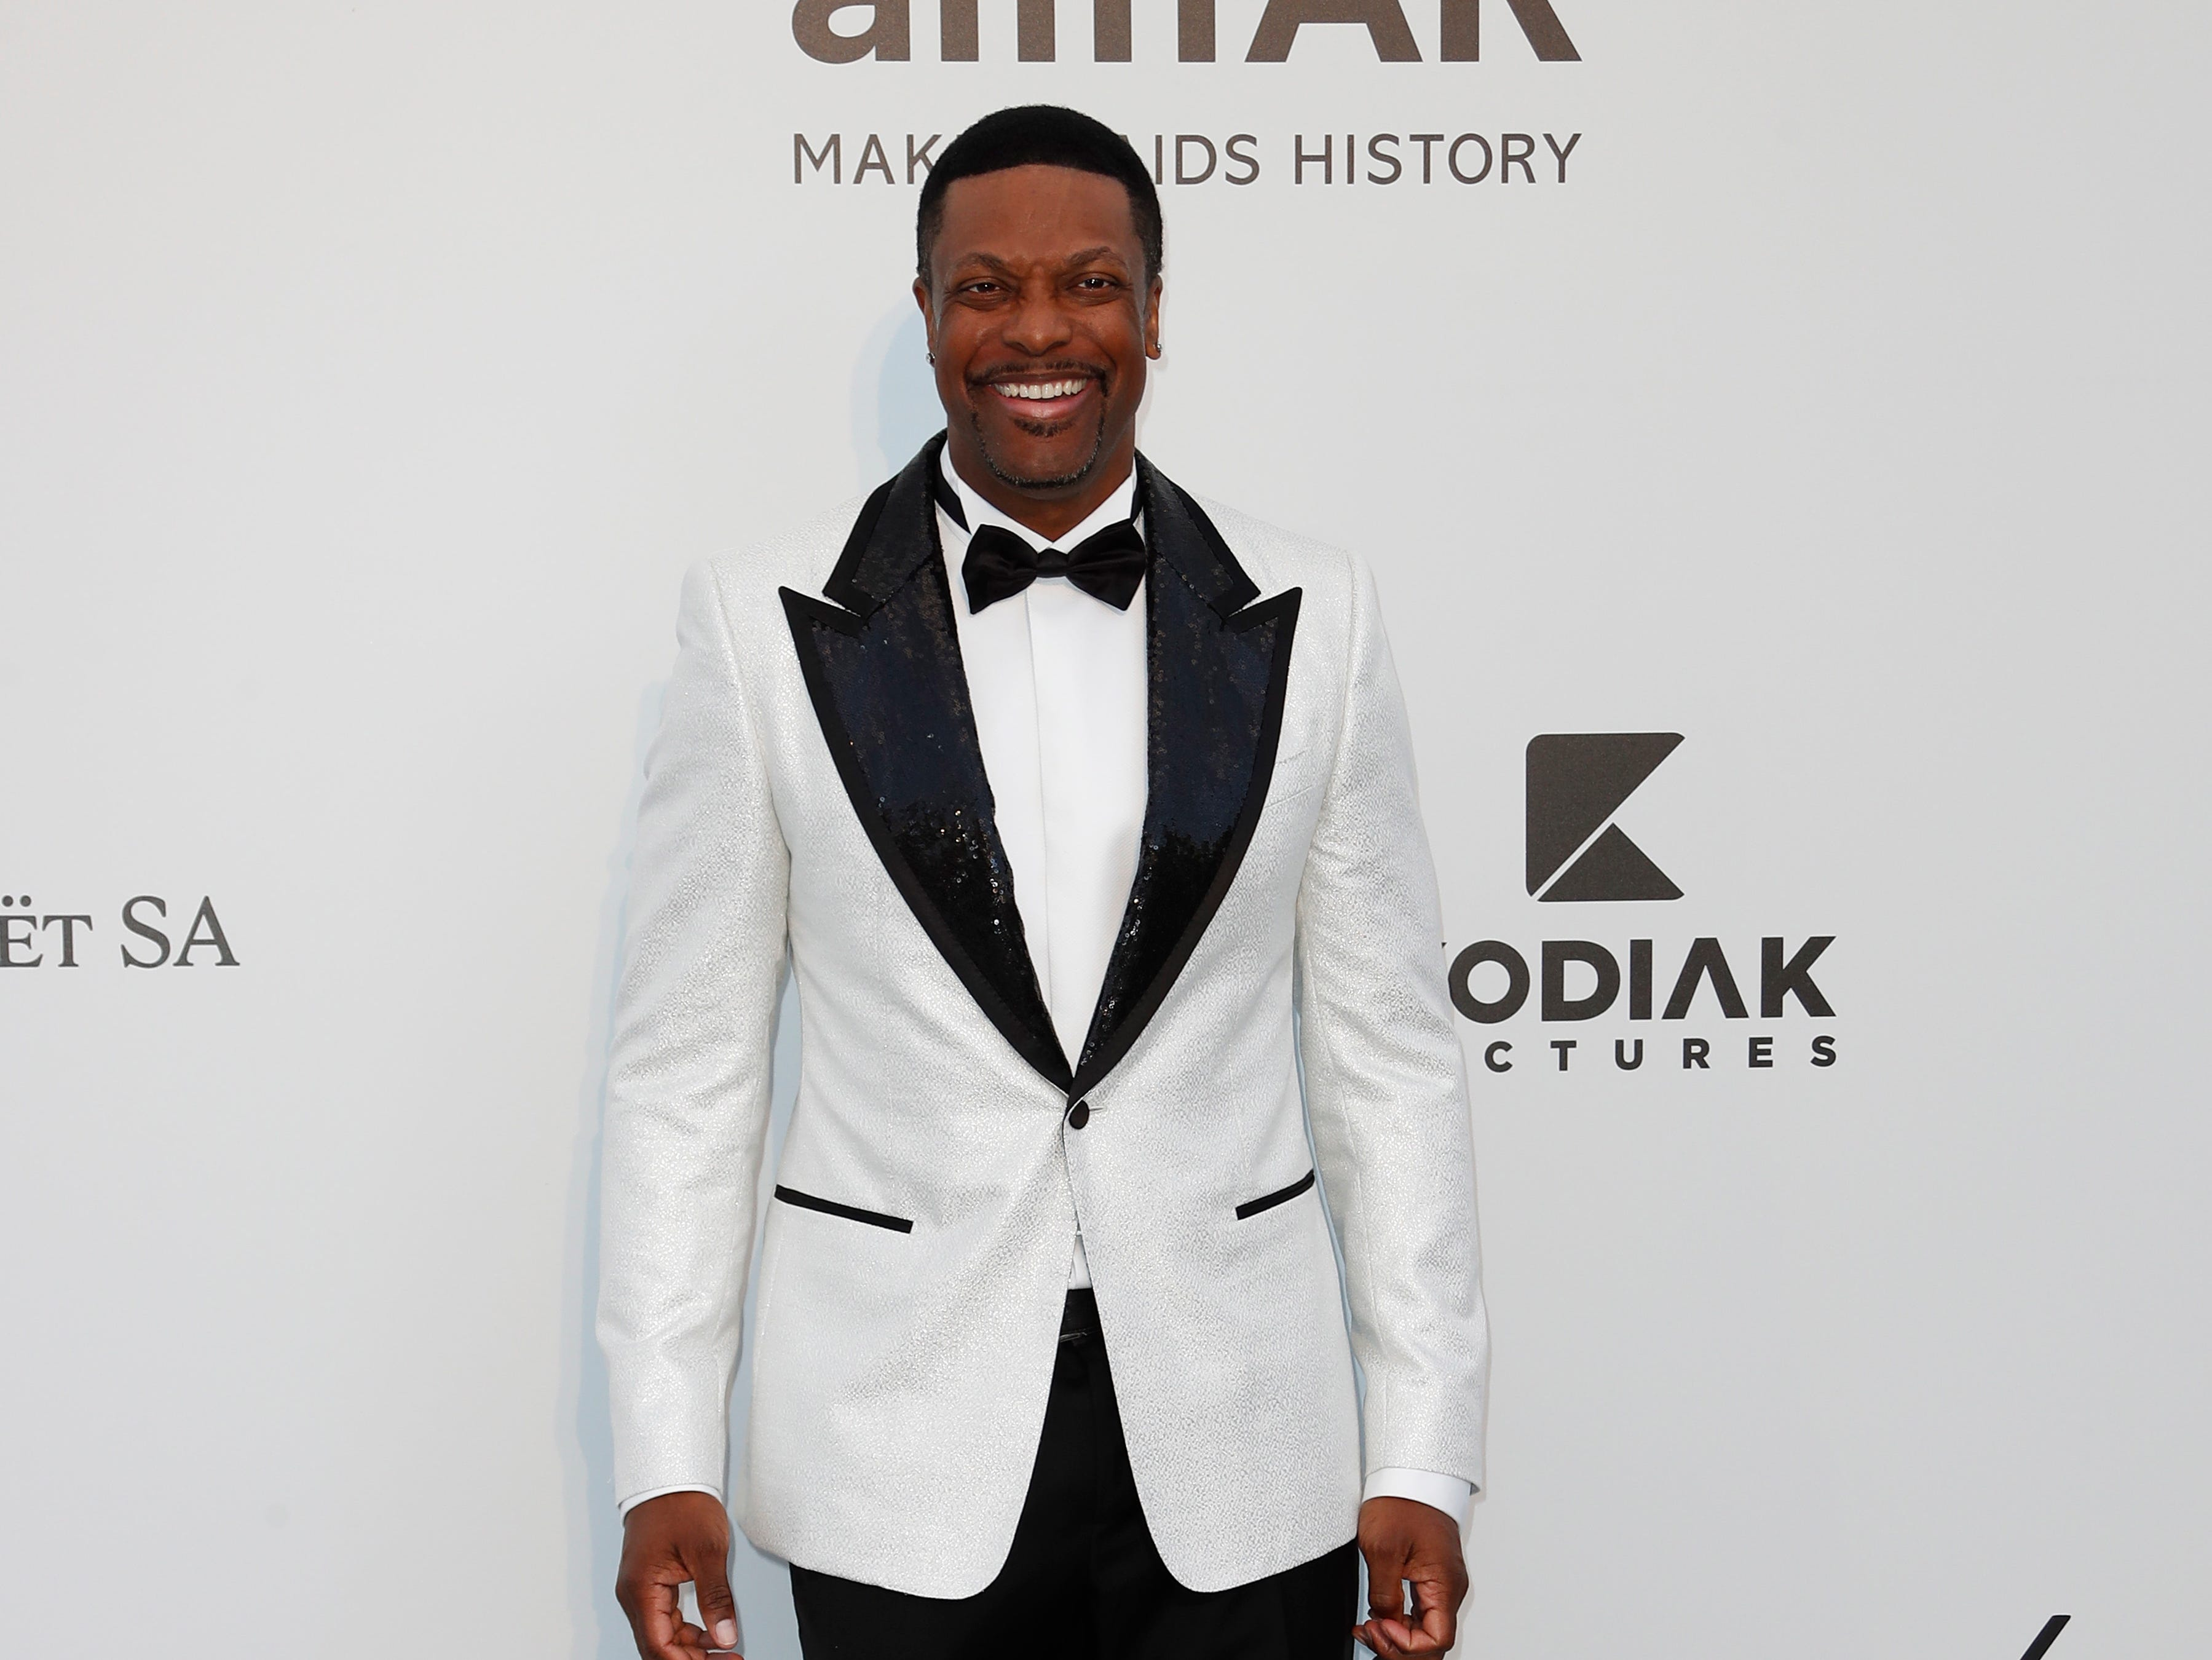 Actor Chris Tucker attends the Cinema Against AIDS amfAR gala 2019 held at the Hotel du Cap, Eden Roc in Cap d'Antibes, France on May 23, 2019.